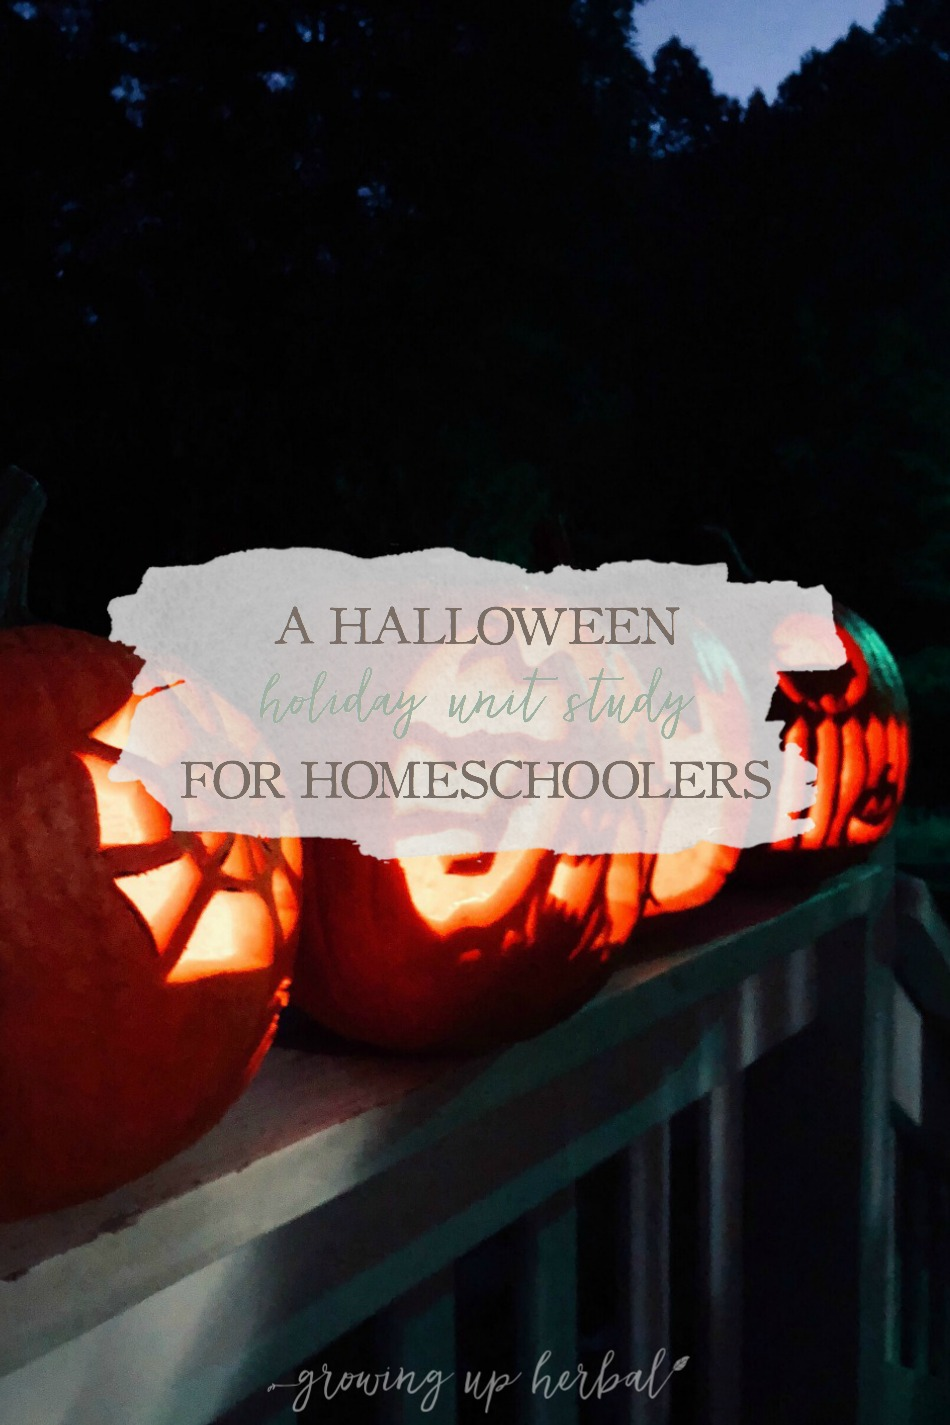 A Halloween Holiday Unit Study for Homeschoolers | Growing Up Herbal | We're trying something new in our homeschool. We're doing a holiday-themed unit study during our Winter Break all about Halloween. Here's what it consists of in case you want to do one too!